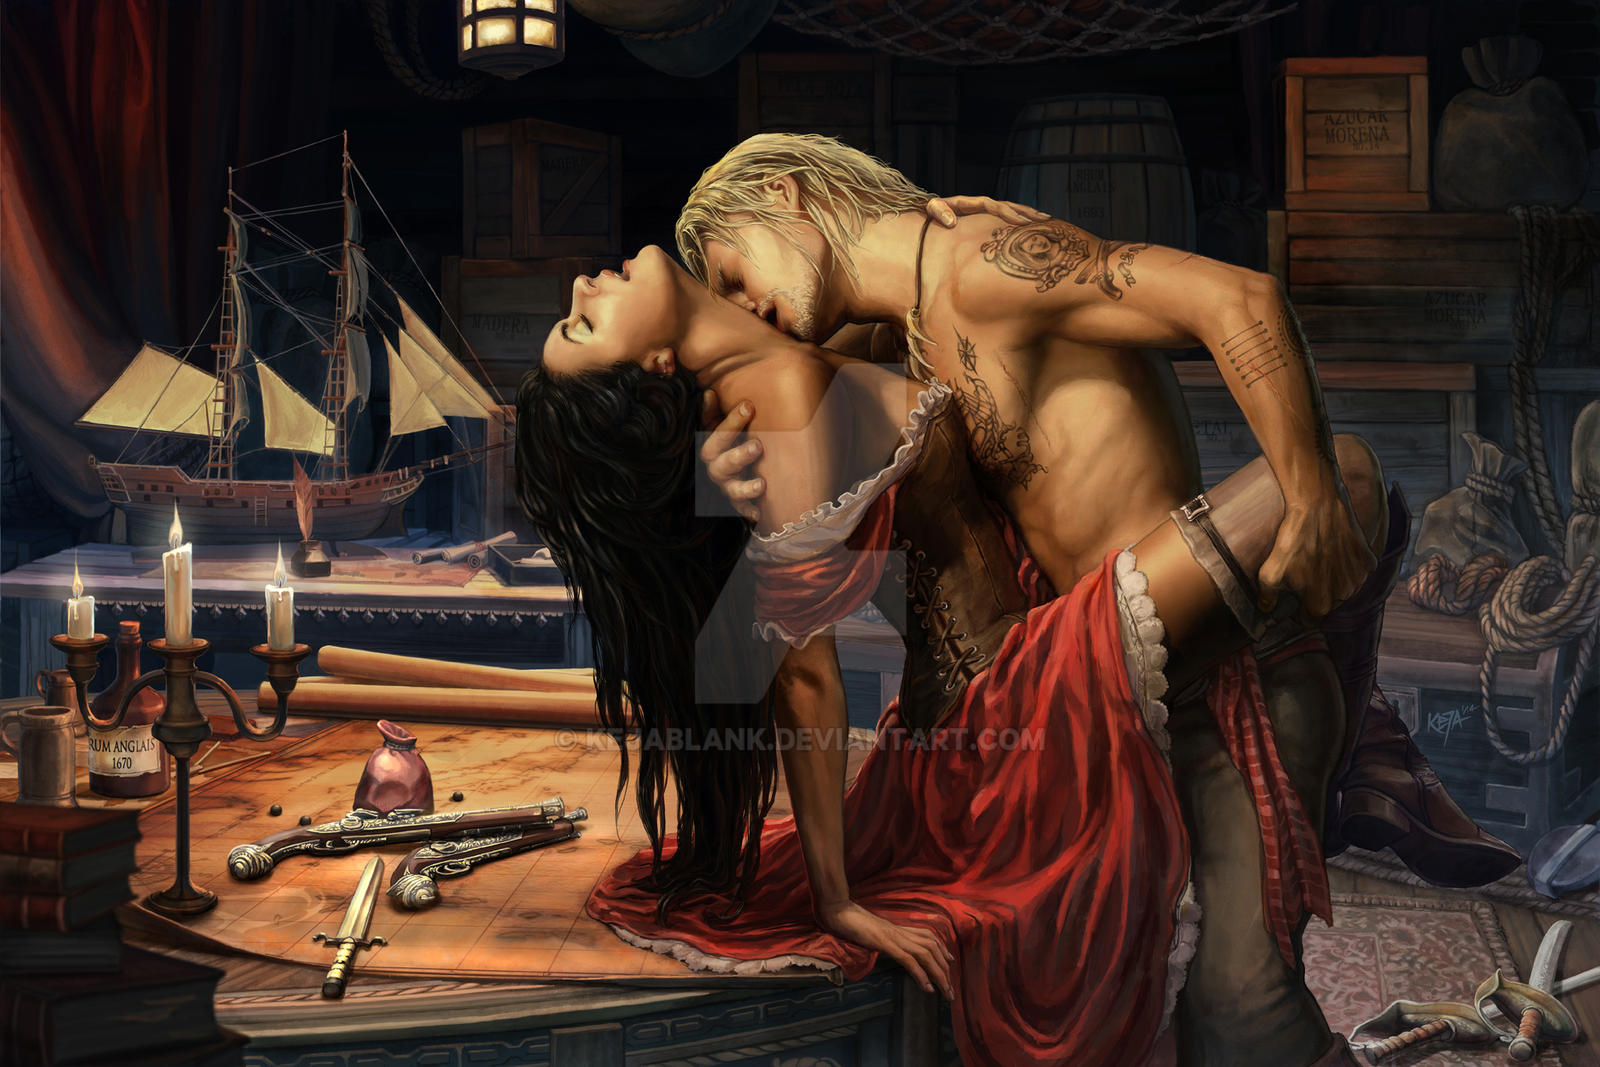 Assassins creed black flag erotic sex cartoon clip